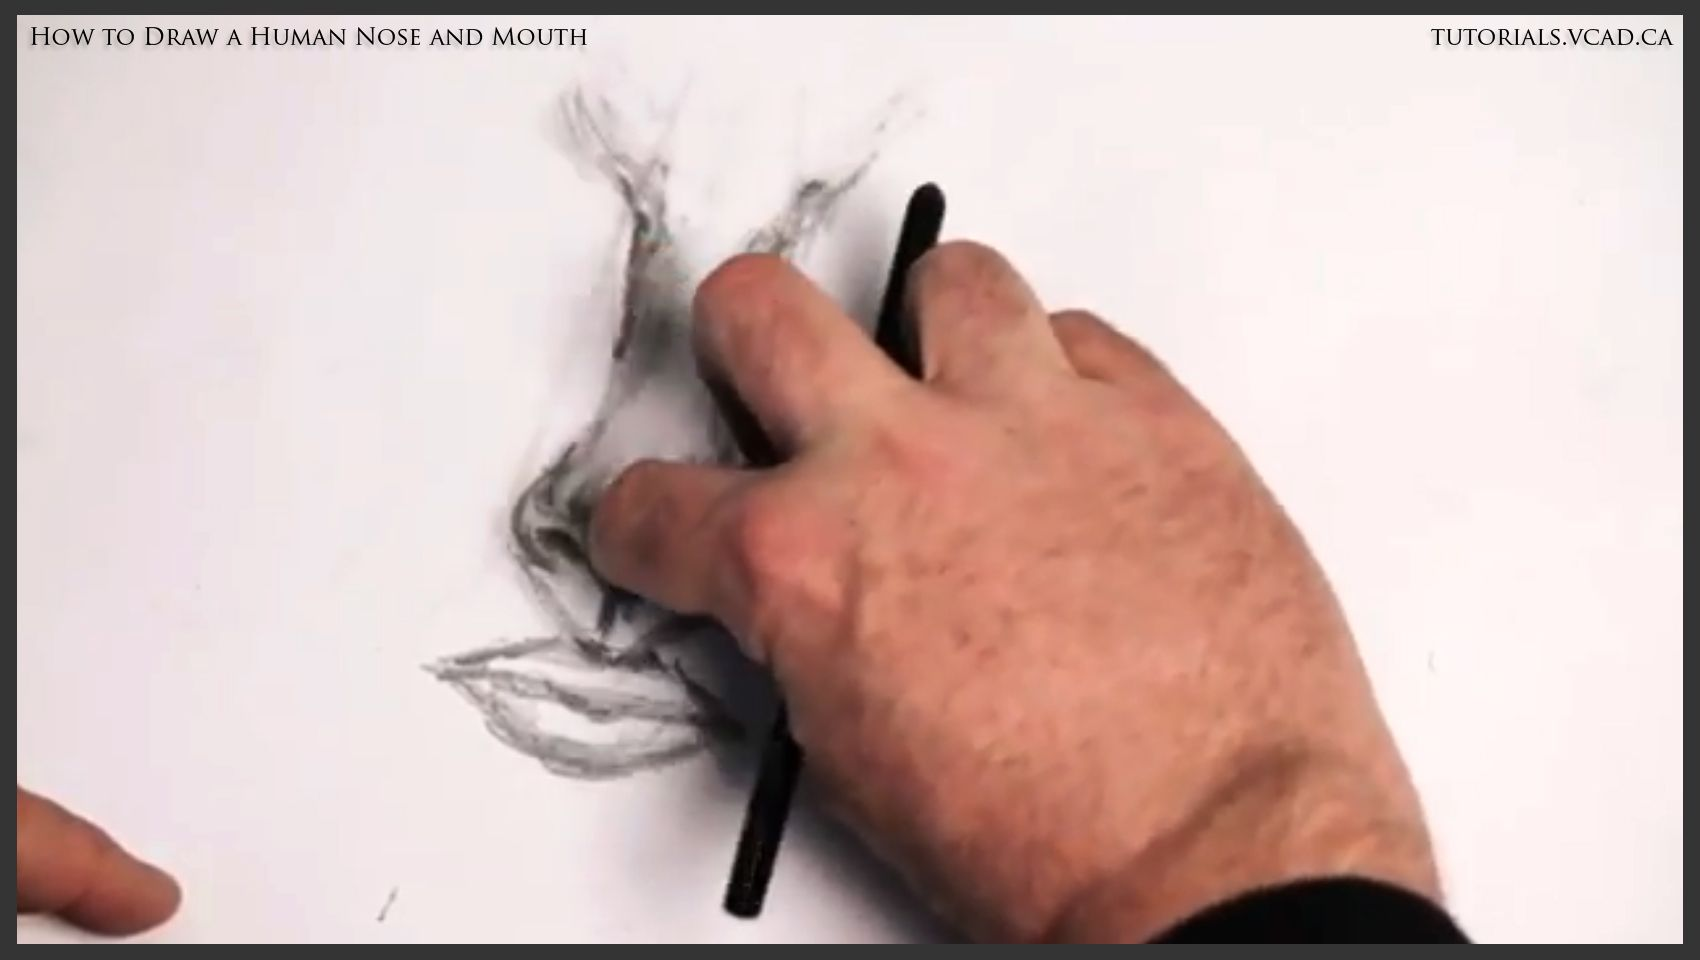 An Easy To Understand Free Online Drawing Tutorial On How To Draw A Human  Nose And Mouth Presented By The Storyboarding, Drawing And Animati